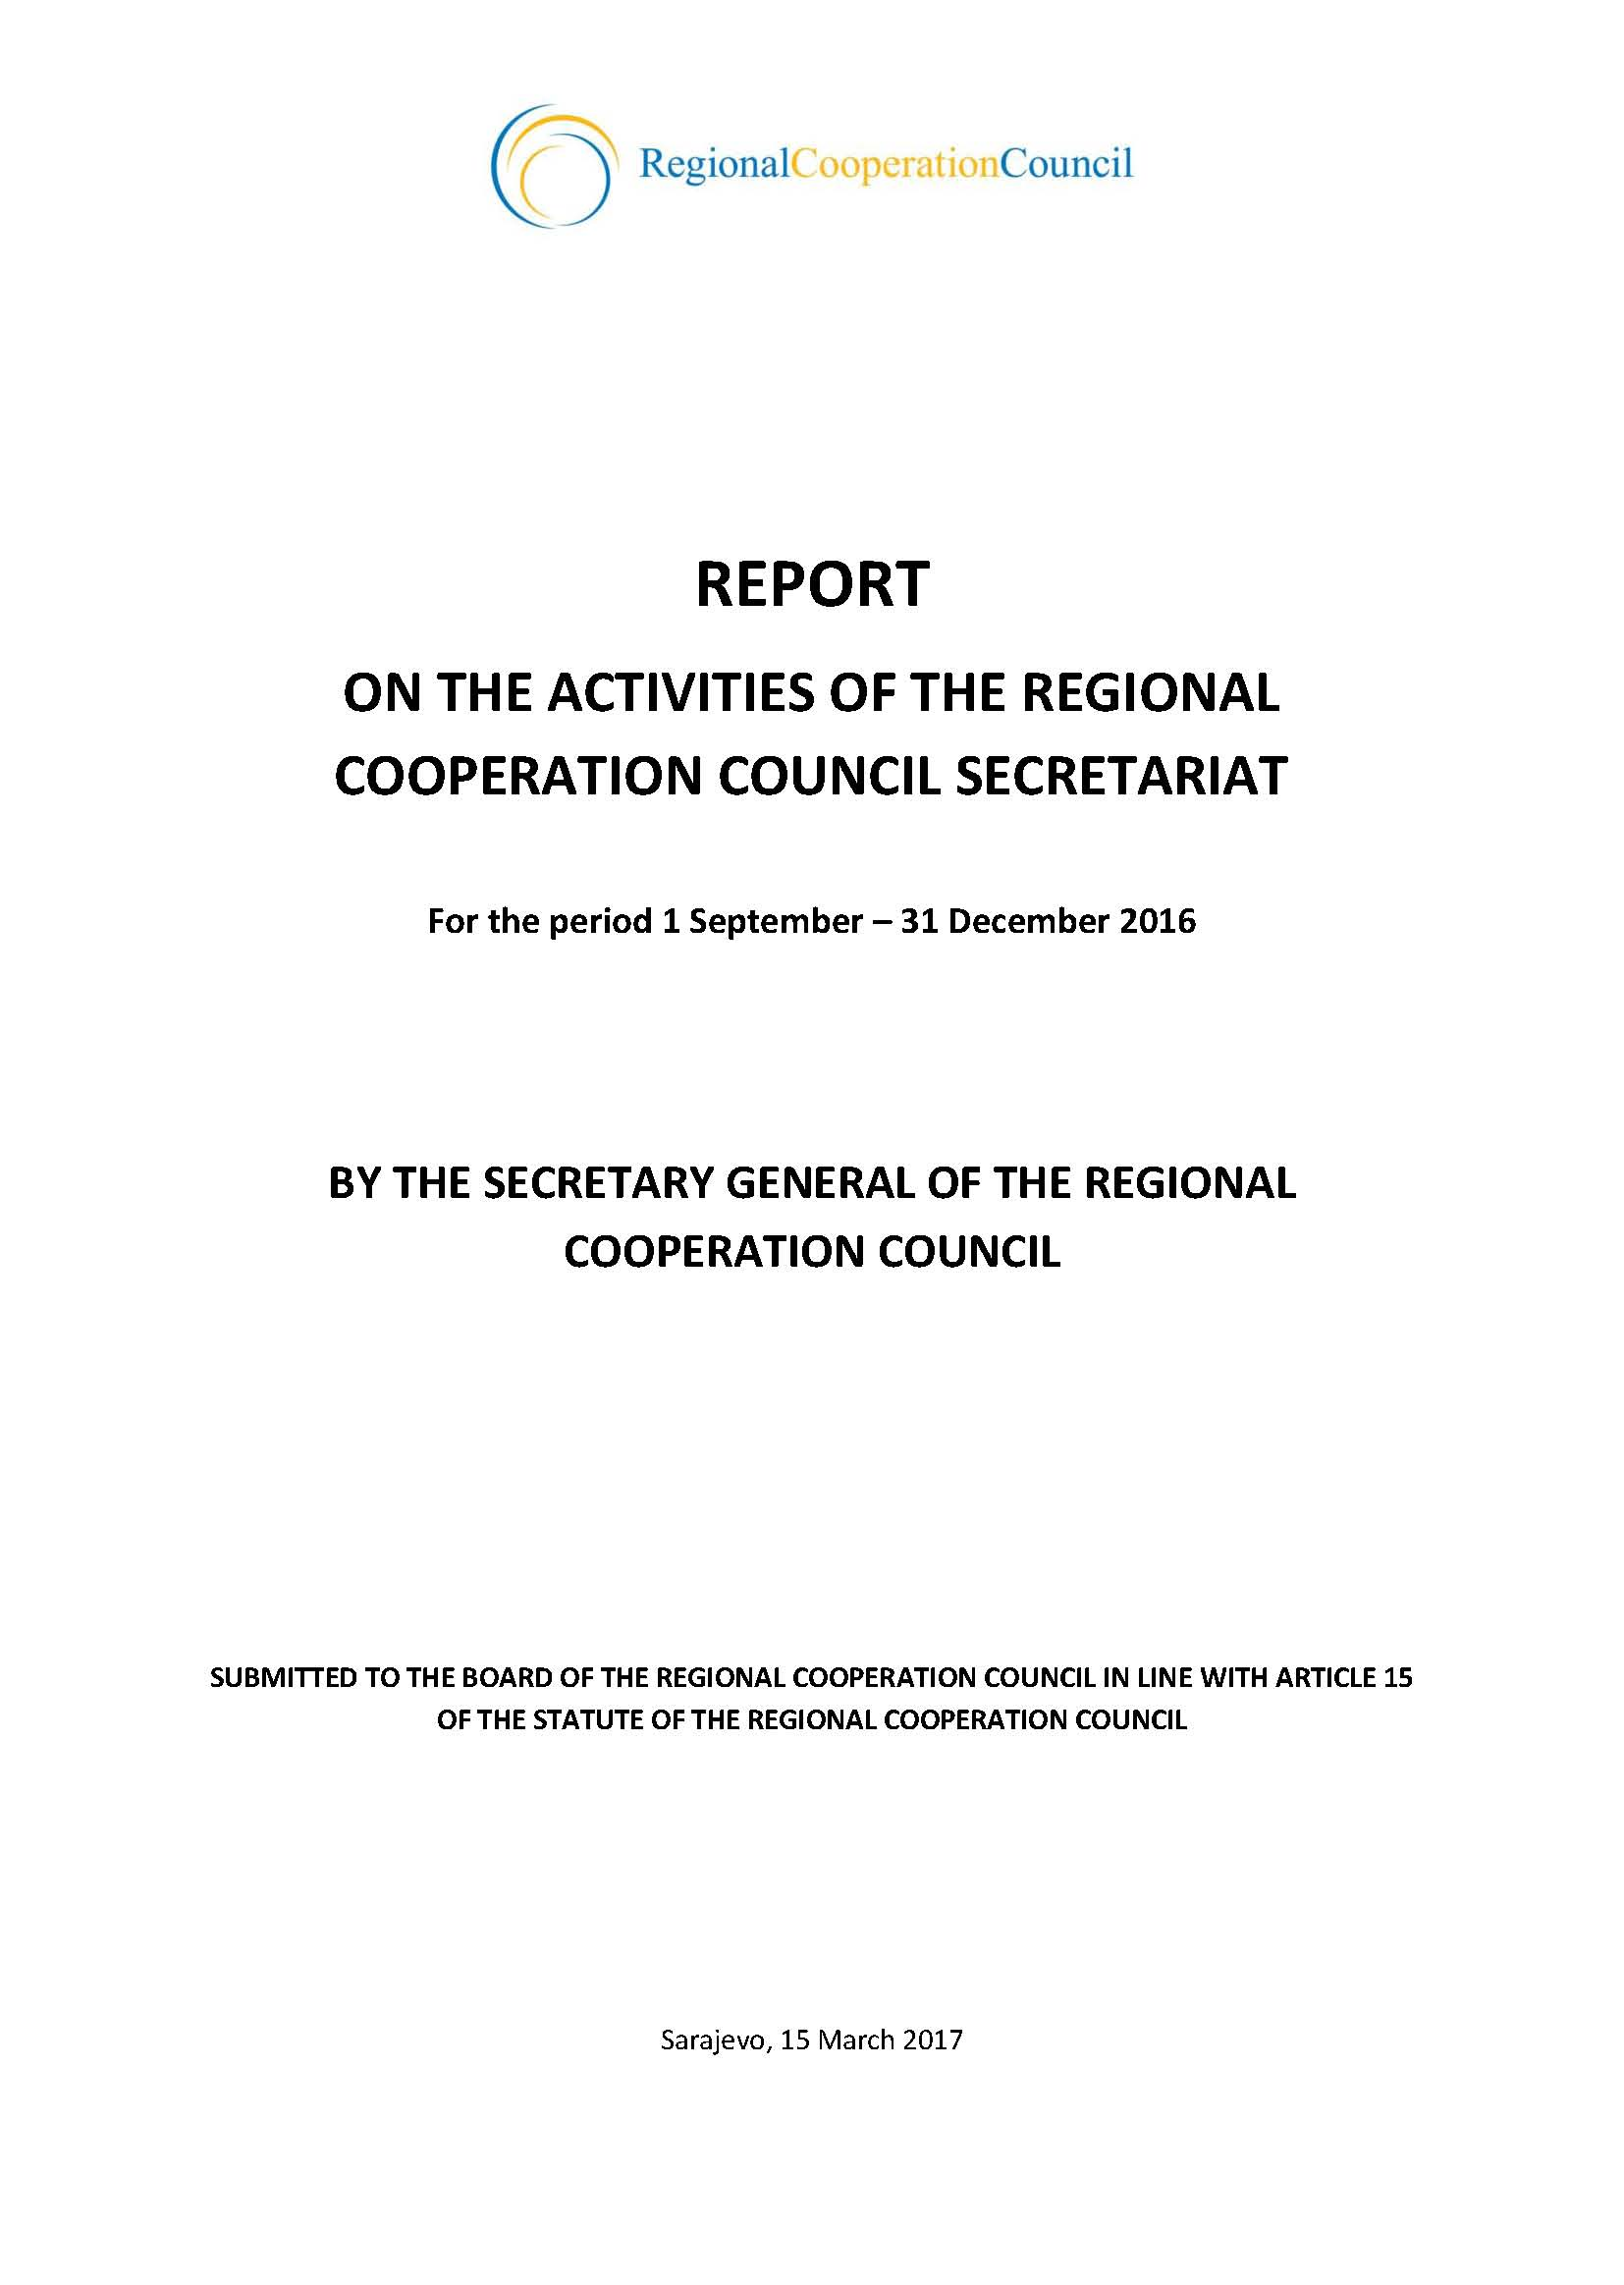 Report on the activities of the Regional Cooperation Council Secretariat for the period 1 September – 31 December 2016